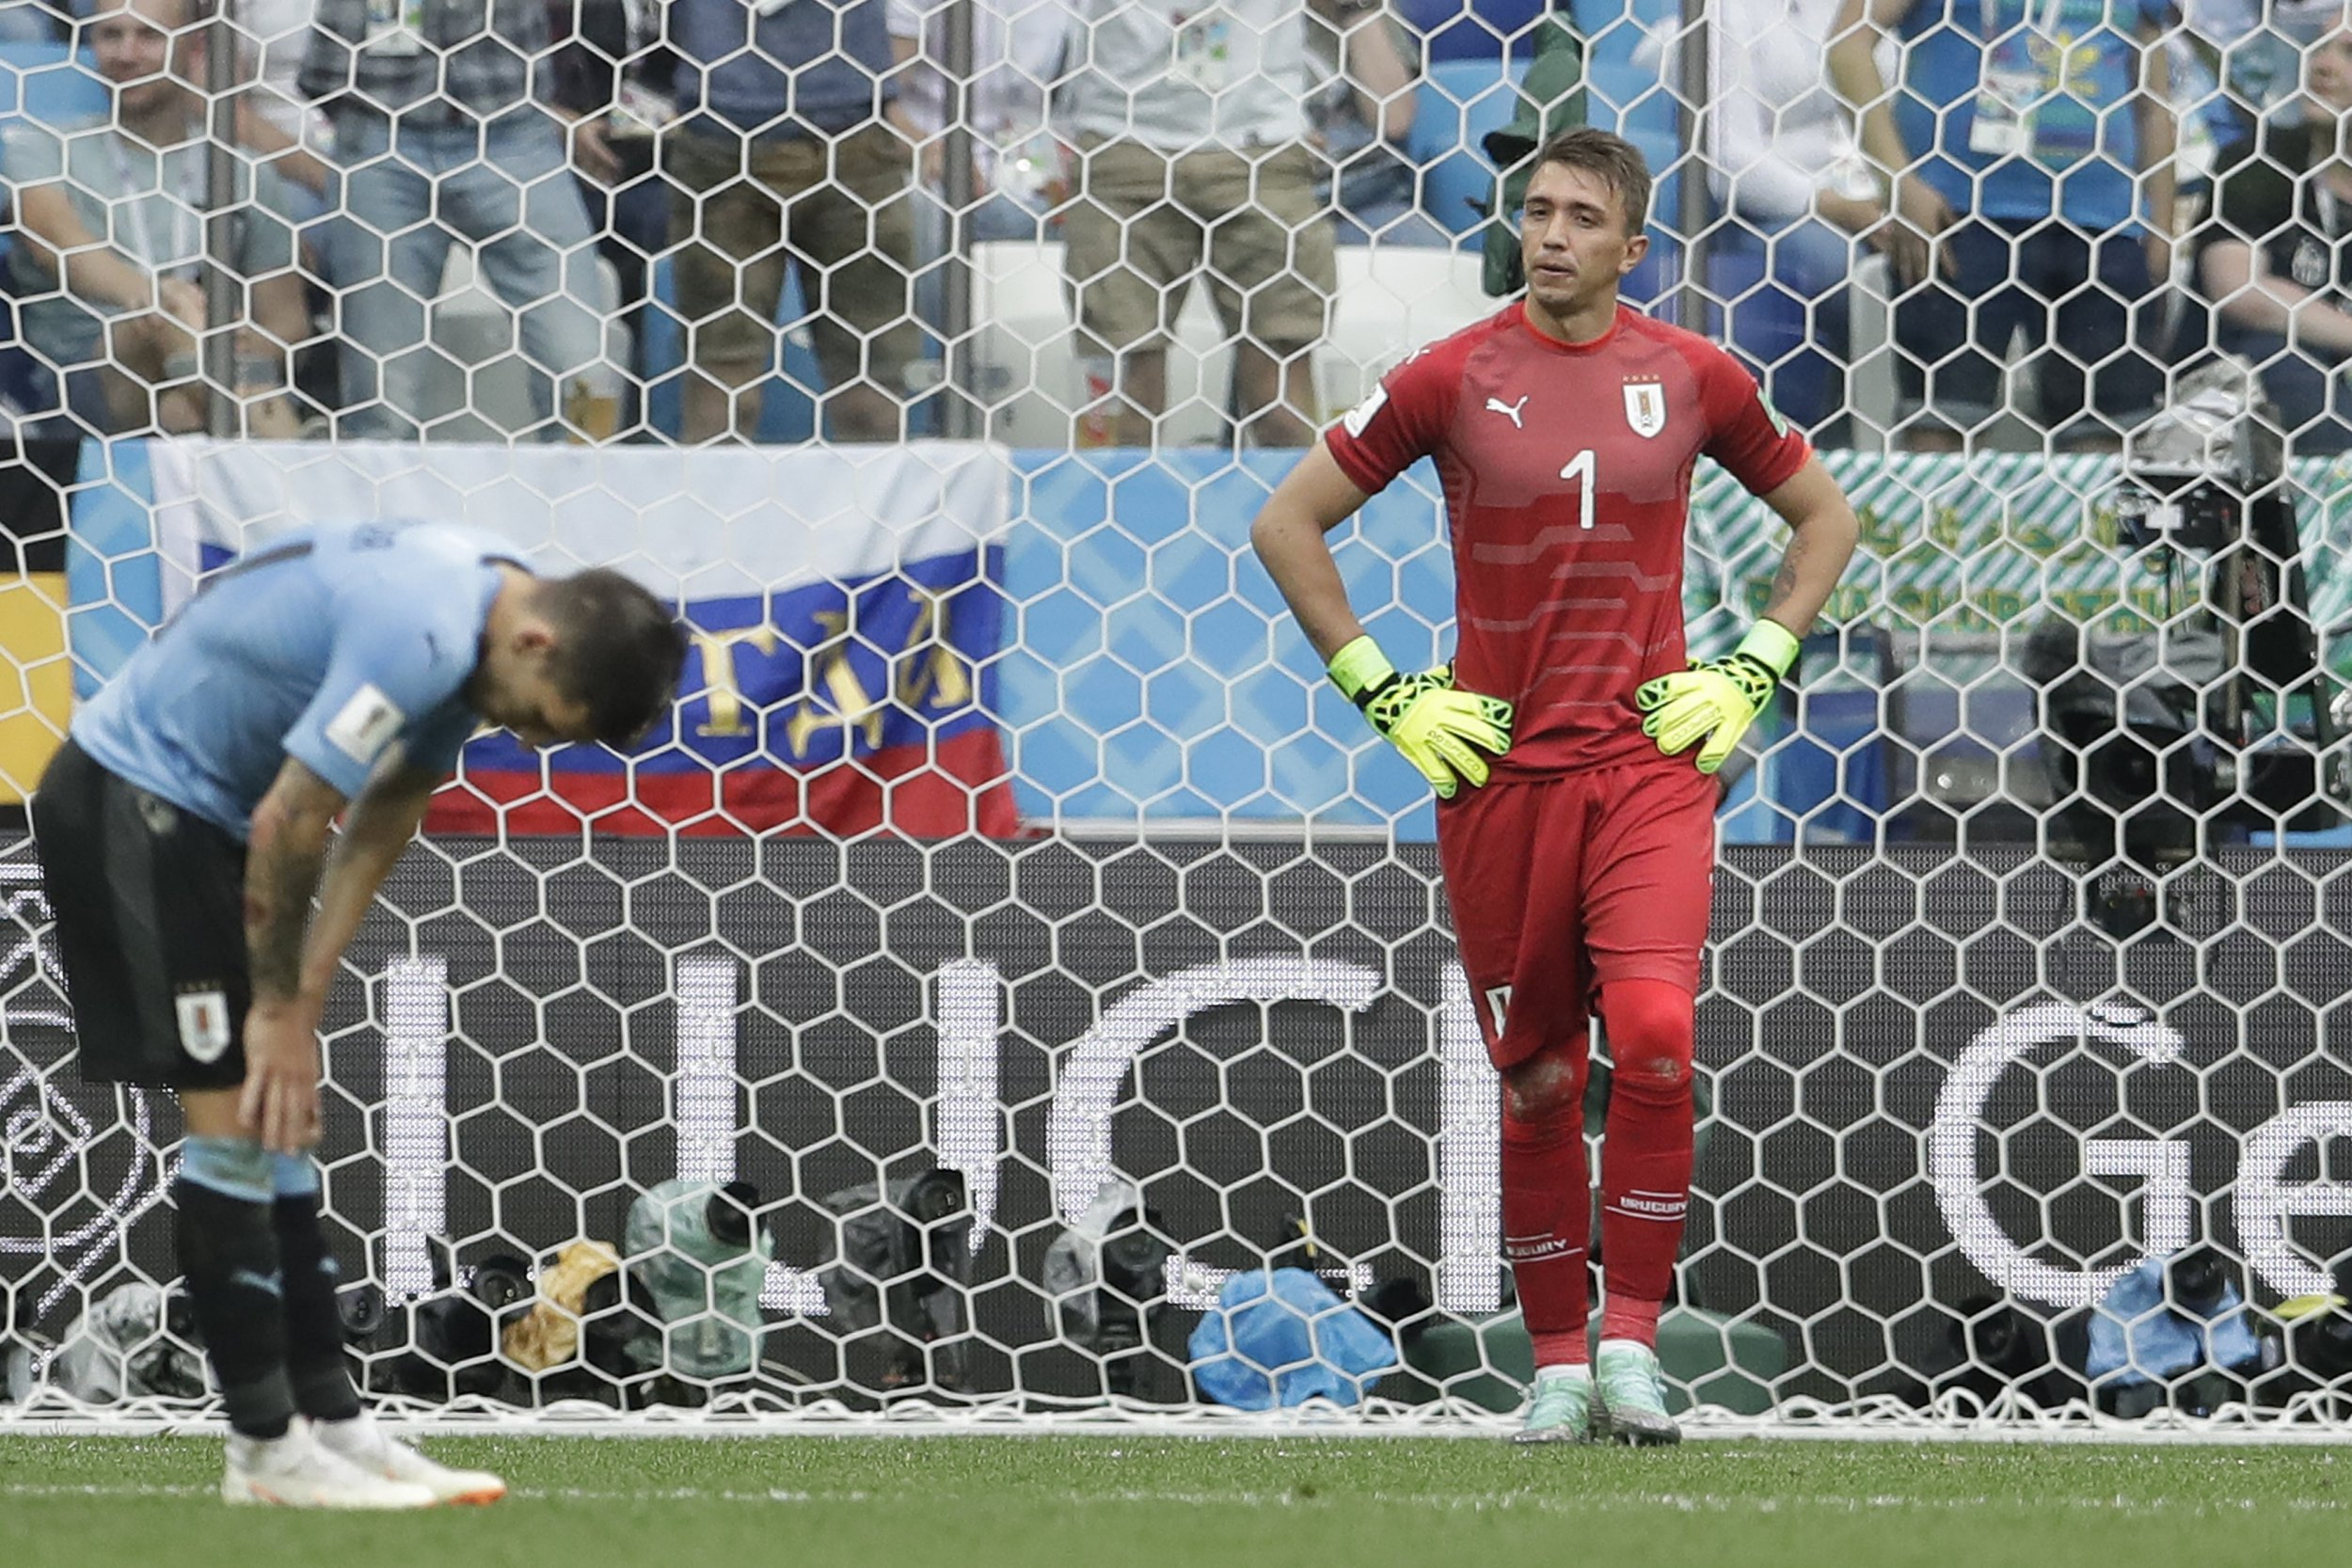 Uruguay goalkeeper Fernando Muslera, right, reacts after France's Antoine Griezmann scored his side's second goal during the quarterfinal match between Uruguay and France at the 2018 soccer World Cup in the Nizhny Novgorod Stadium, in Nizhny Novgorod, Russia, Friday, July 6, 2018. (AP Photo/Petr David Josek)